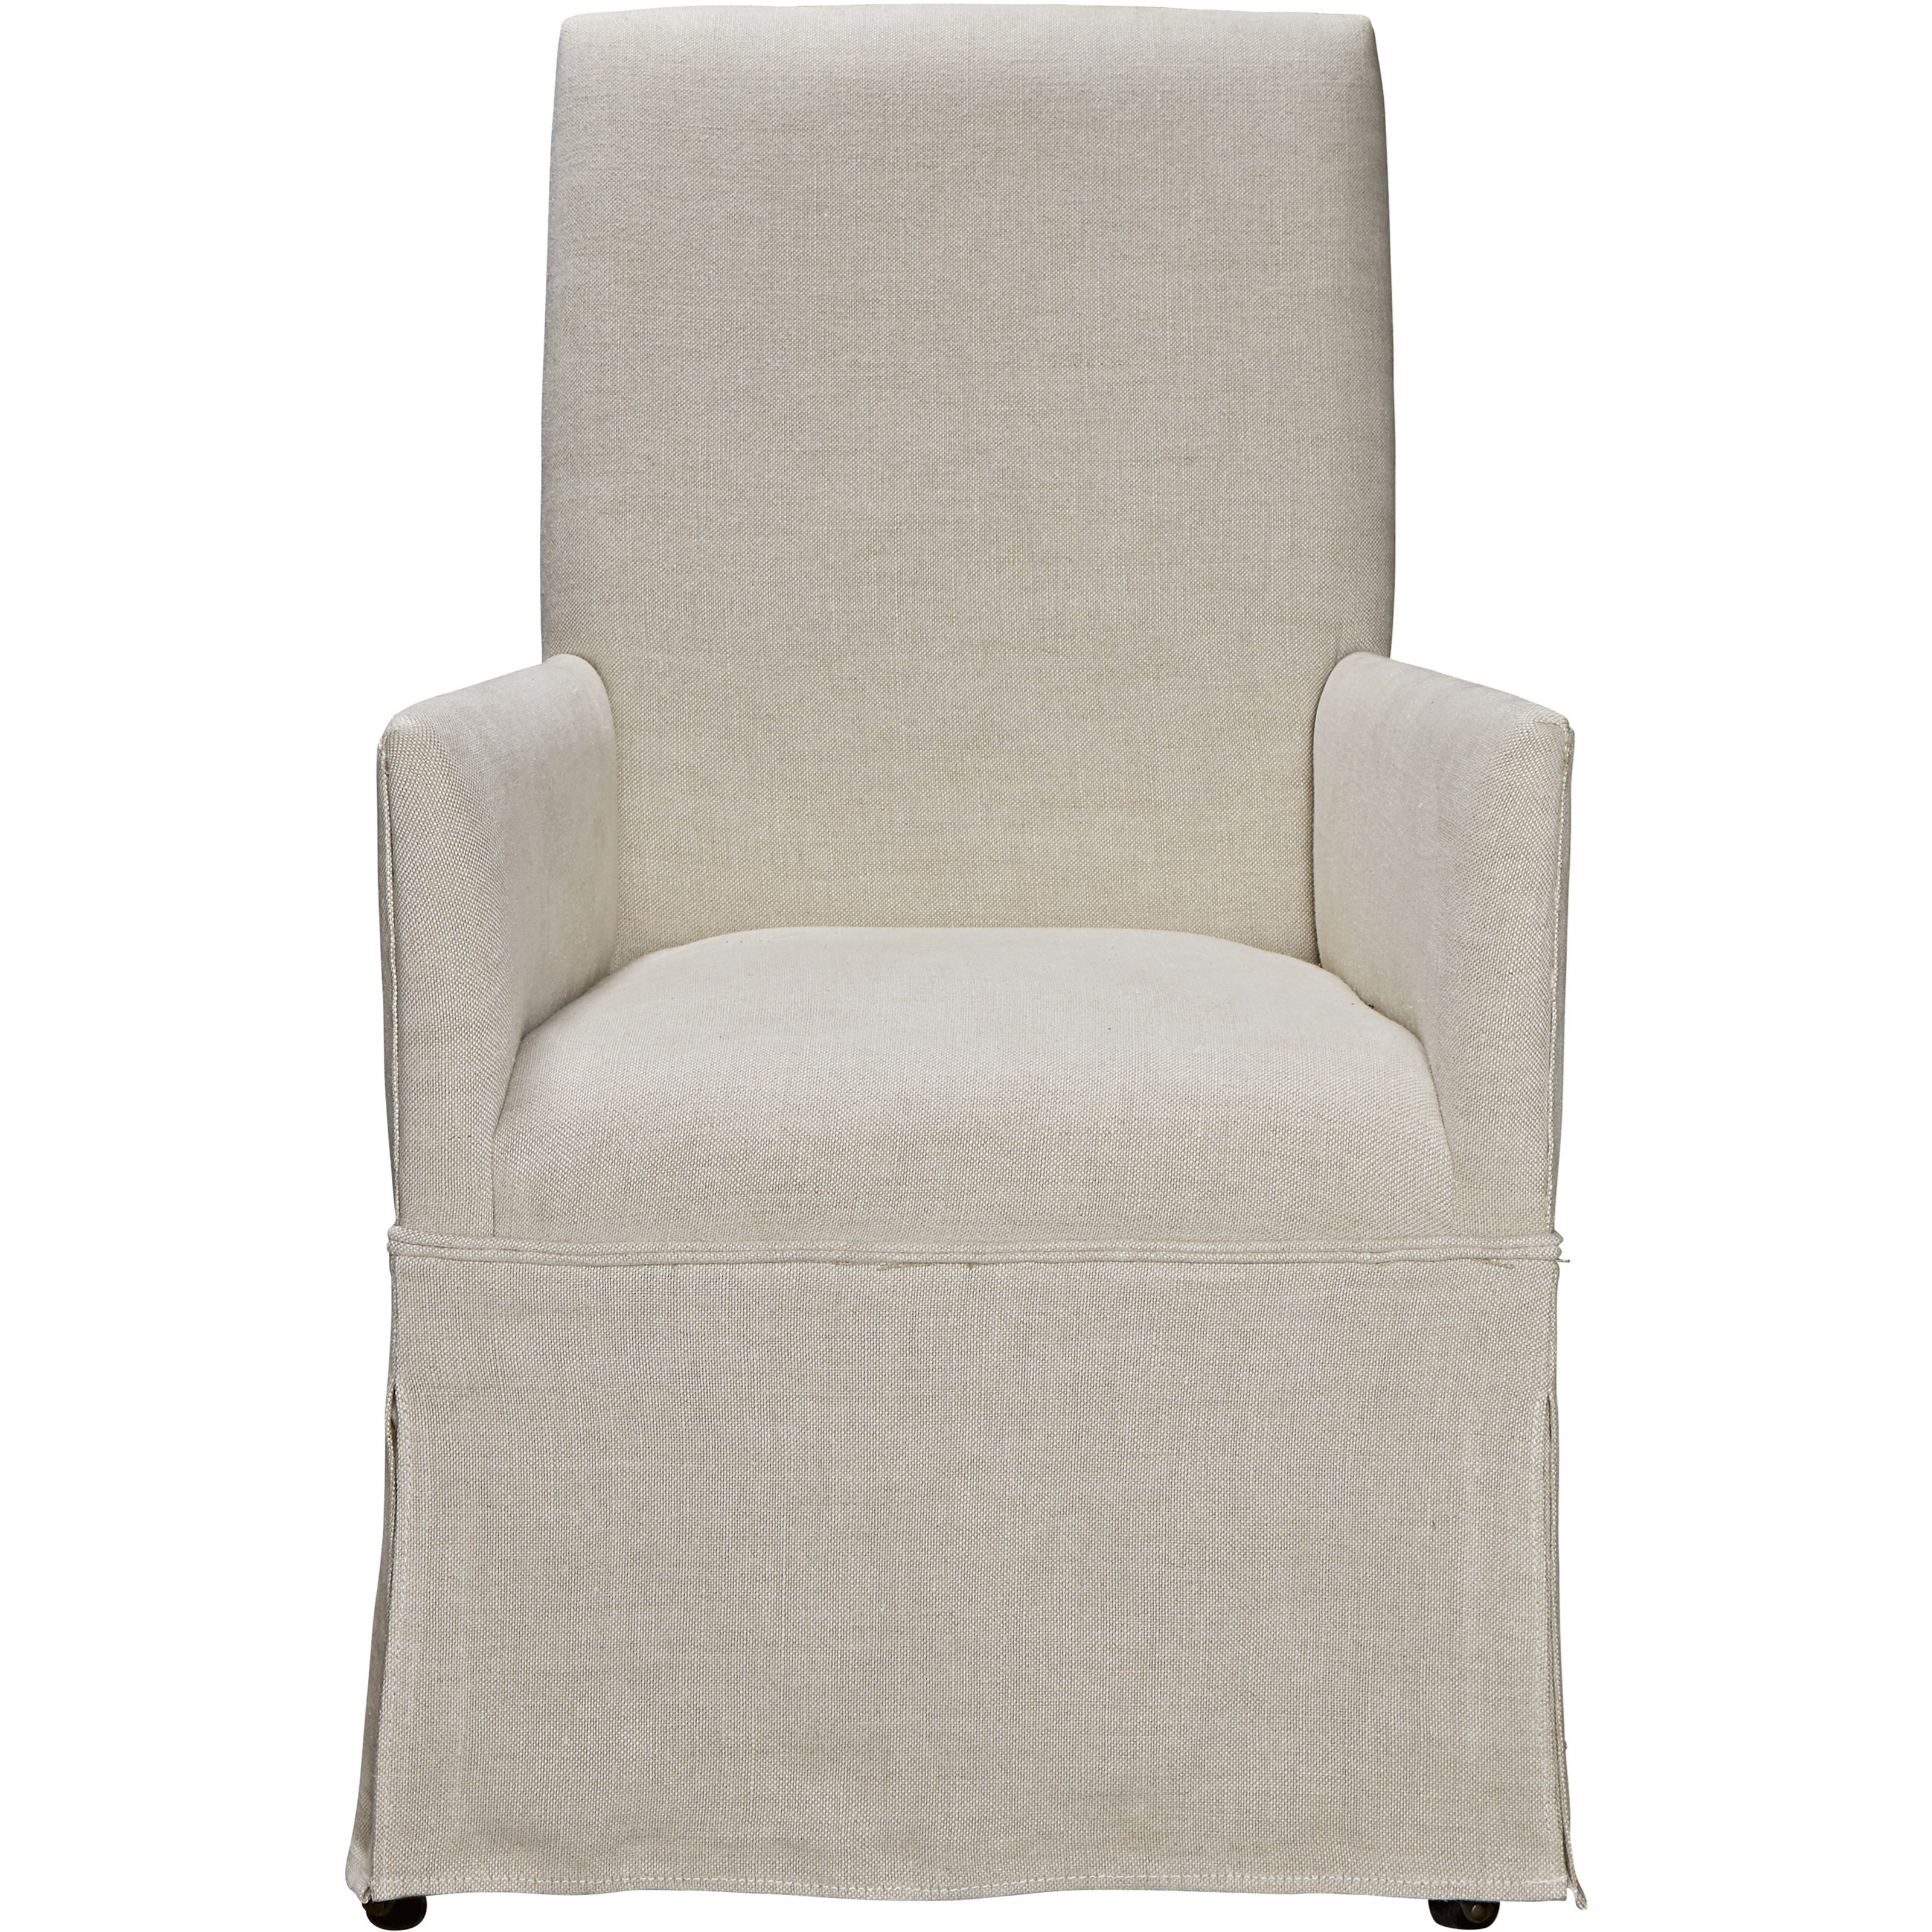 Universal Sojourn Respite Upholstered Arm Chair - Item Number: 543A639-RTA